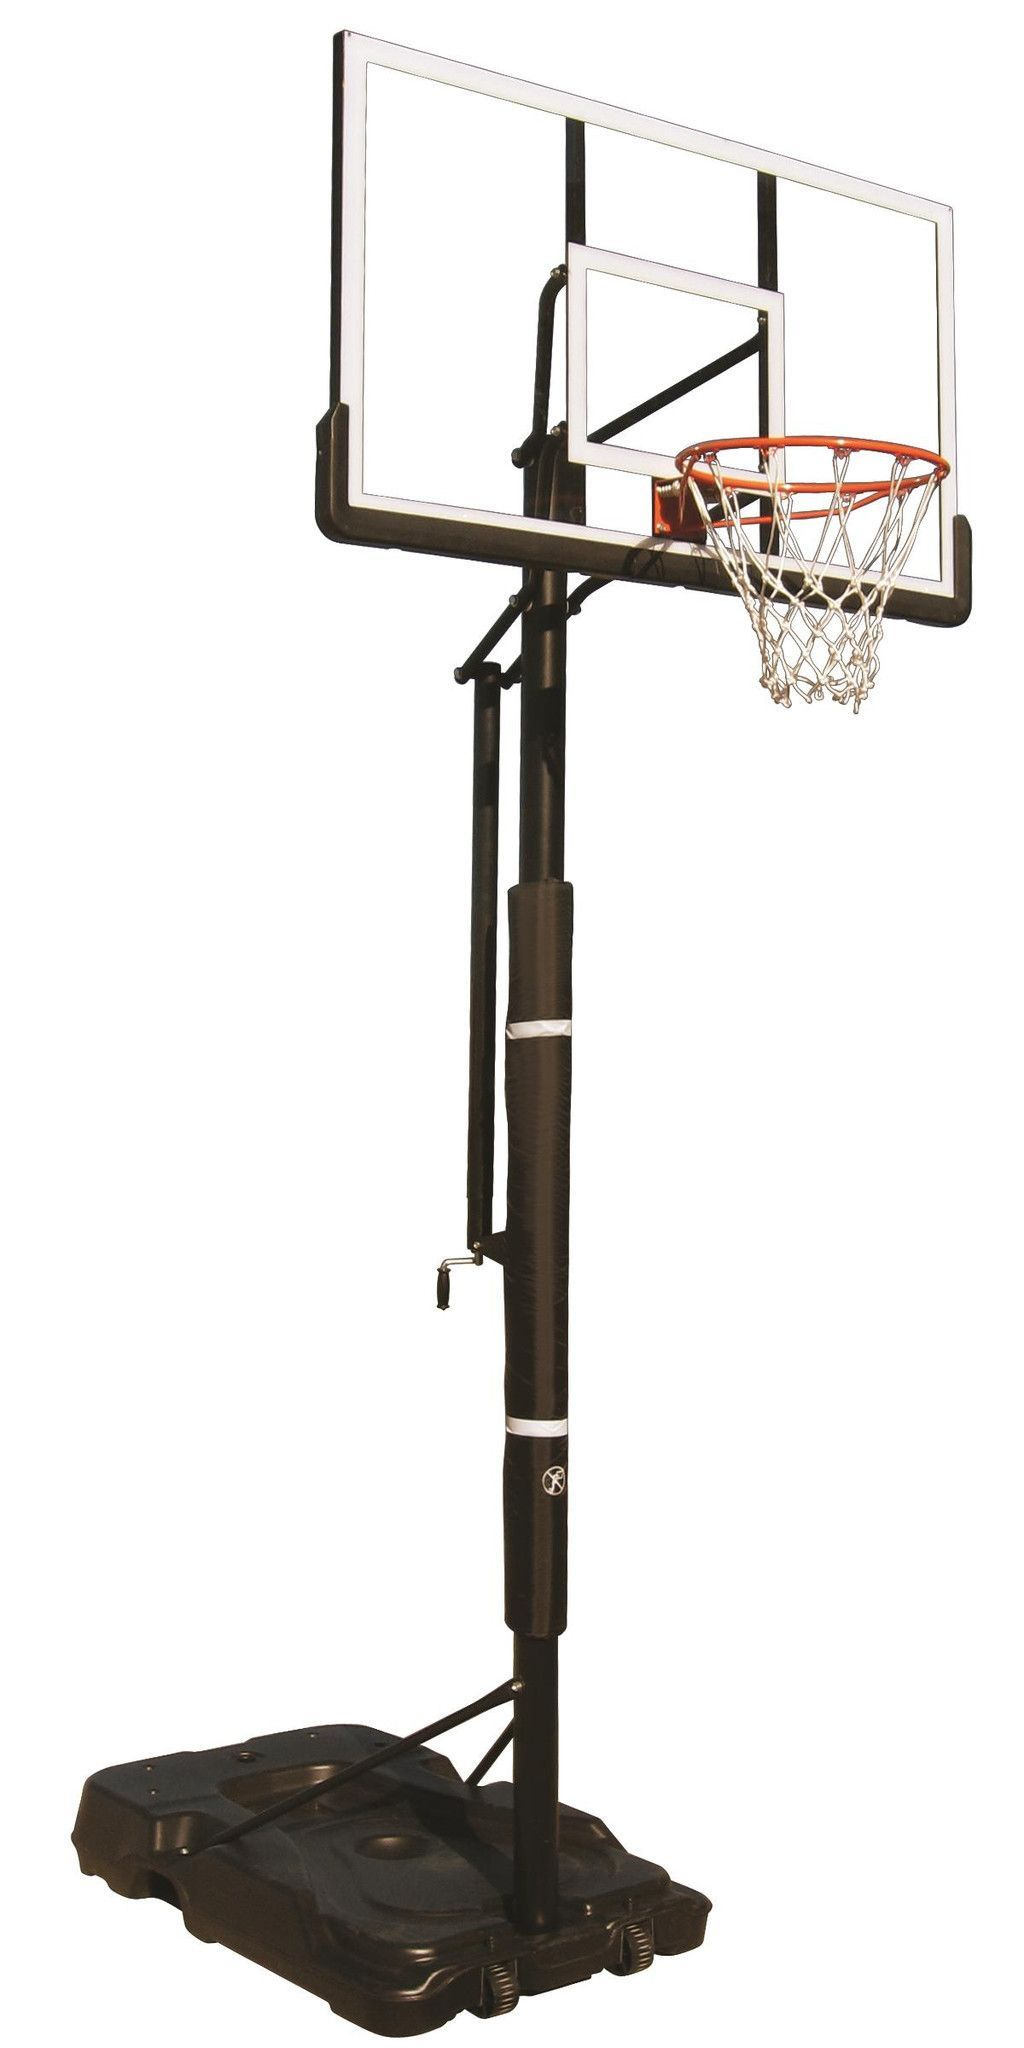 First Team Eliminator Portable Basketball Hoop Nj Swingsets Portable Basketball Hoop Adjustable Basketball Hoop Basketball Hoop